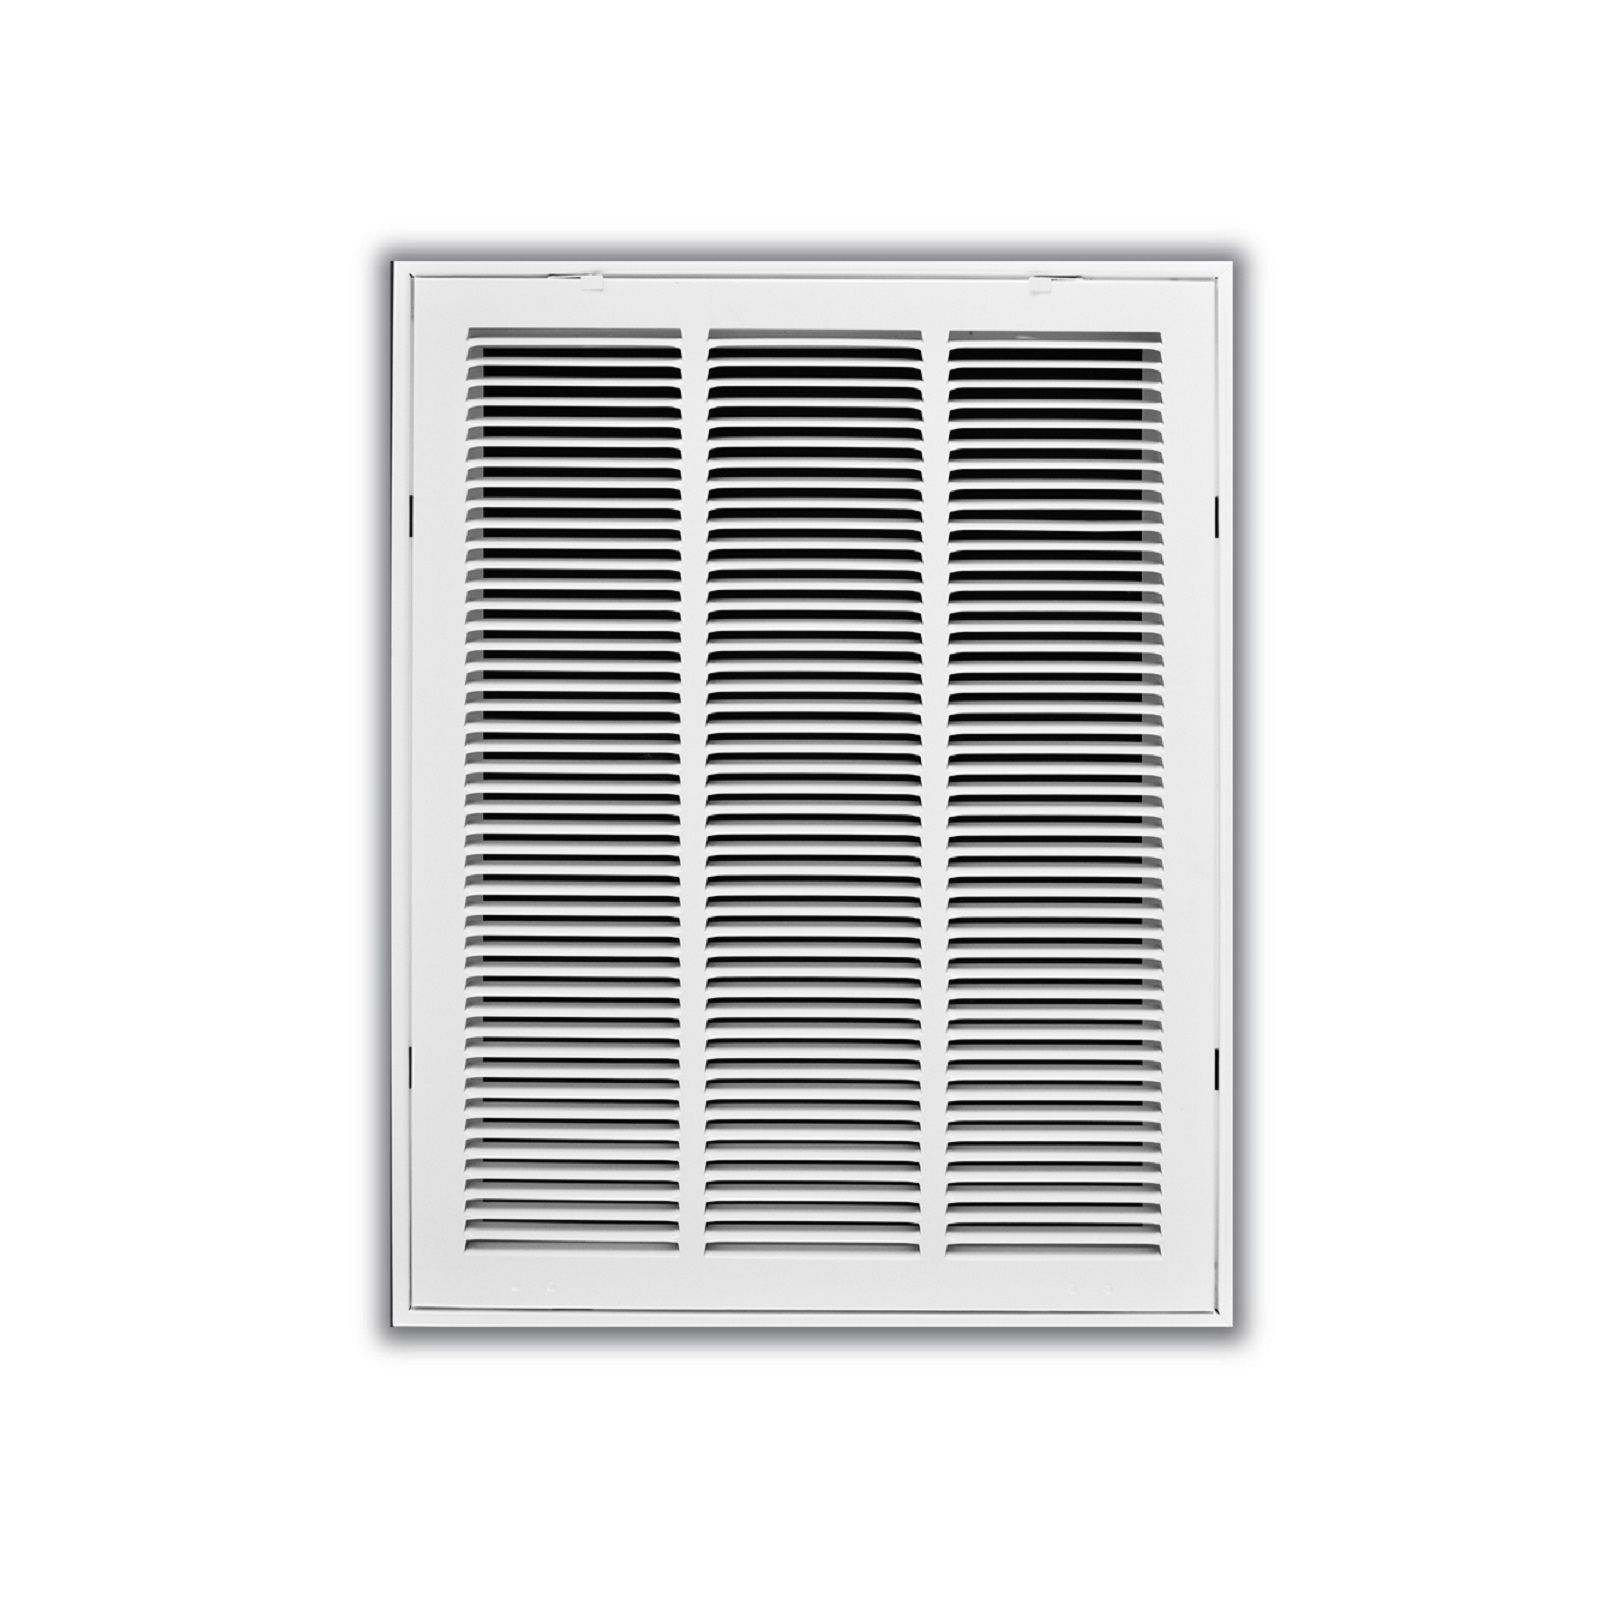 "TRUaire 190 16X20 - Steel Return Air Filter Grille With Fixed Hinged Face, White, 16"" X 20"""